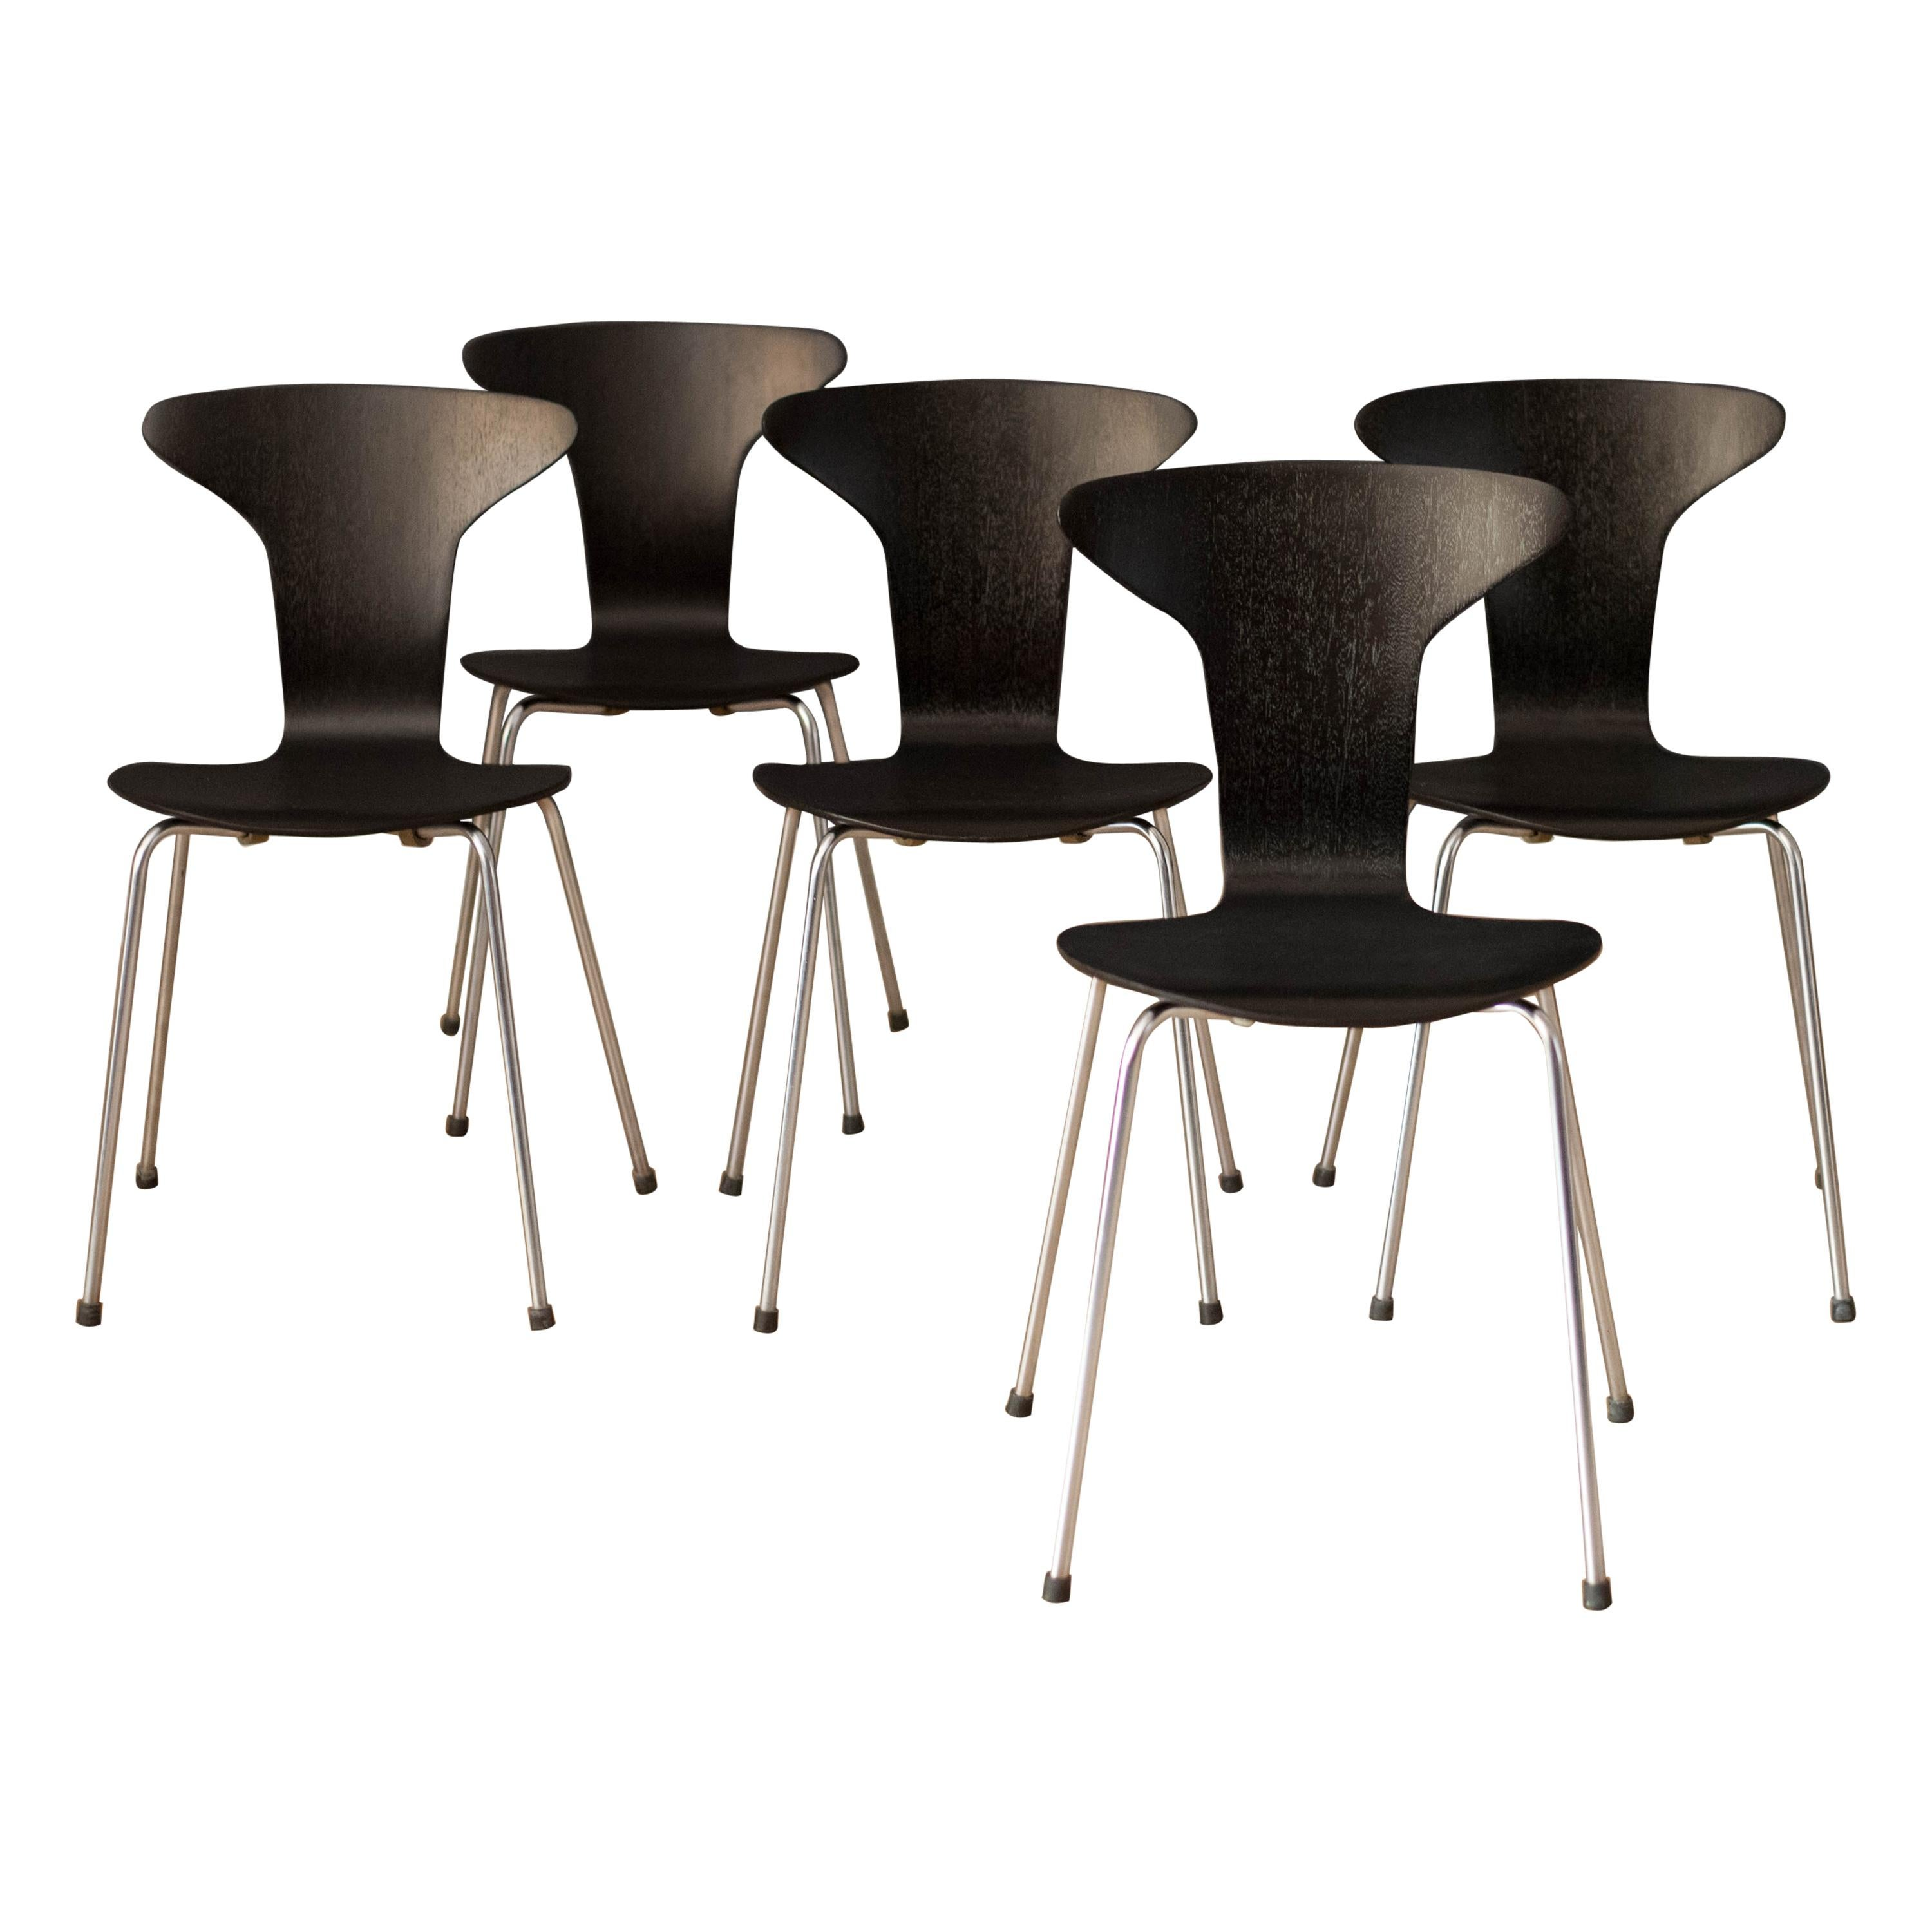 Danish Mosquito Munkegård Dining Chairs by Arne Jacobsen